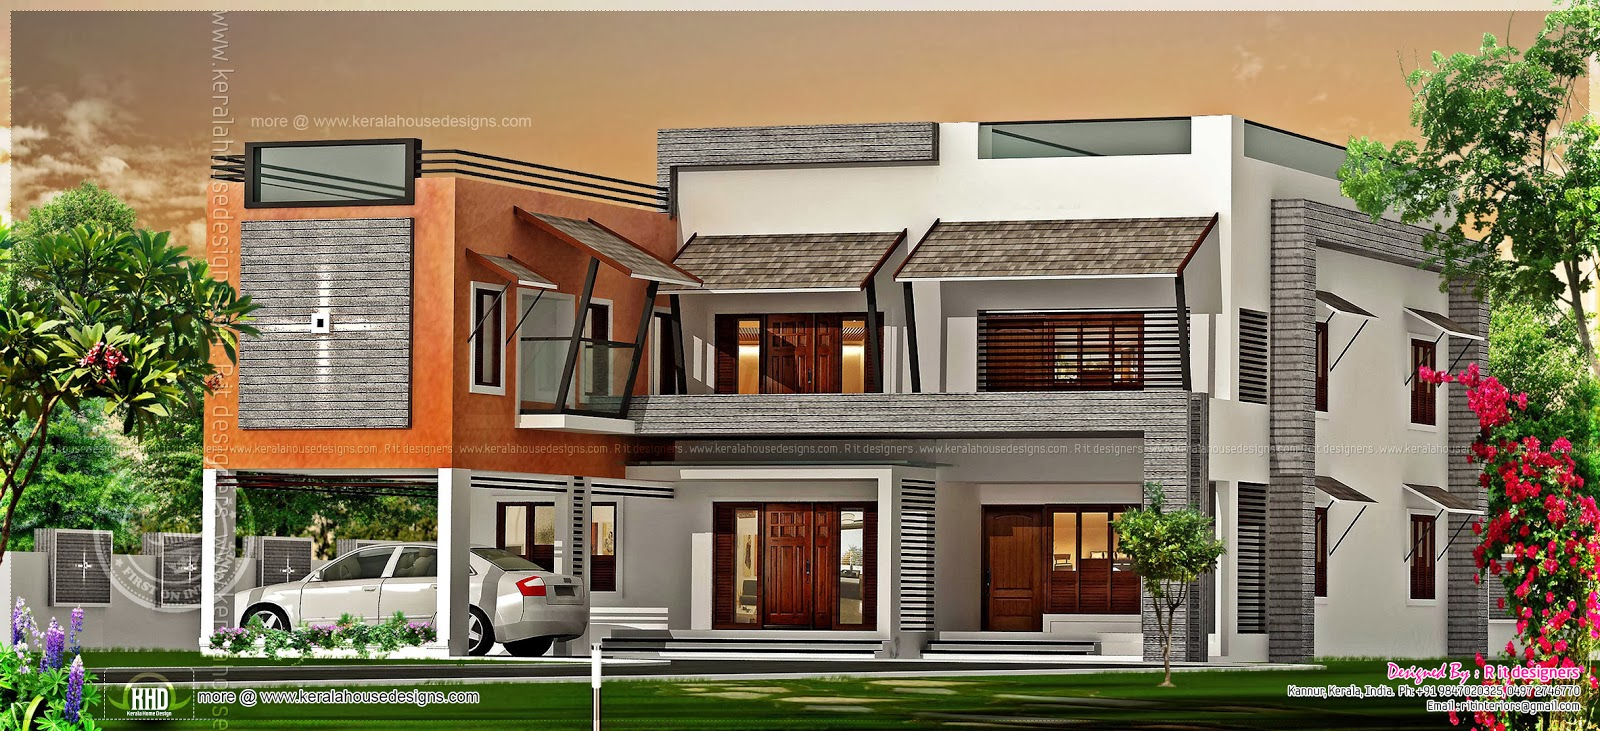 Luxury flat roof house in kannur kerala kerala home Flat house plans